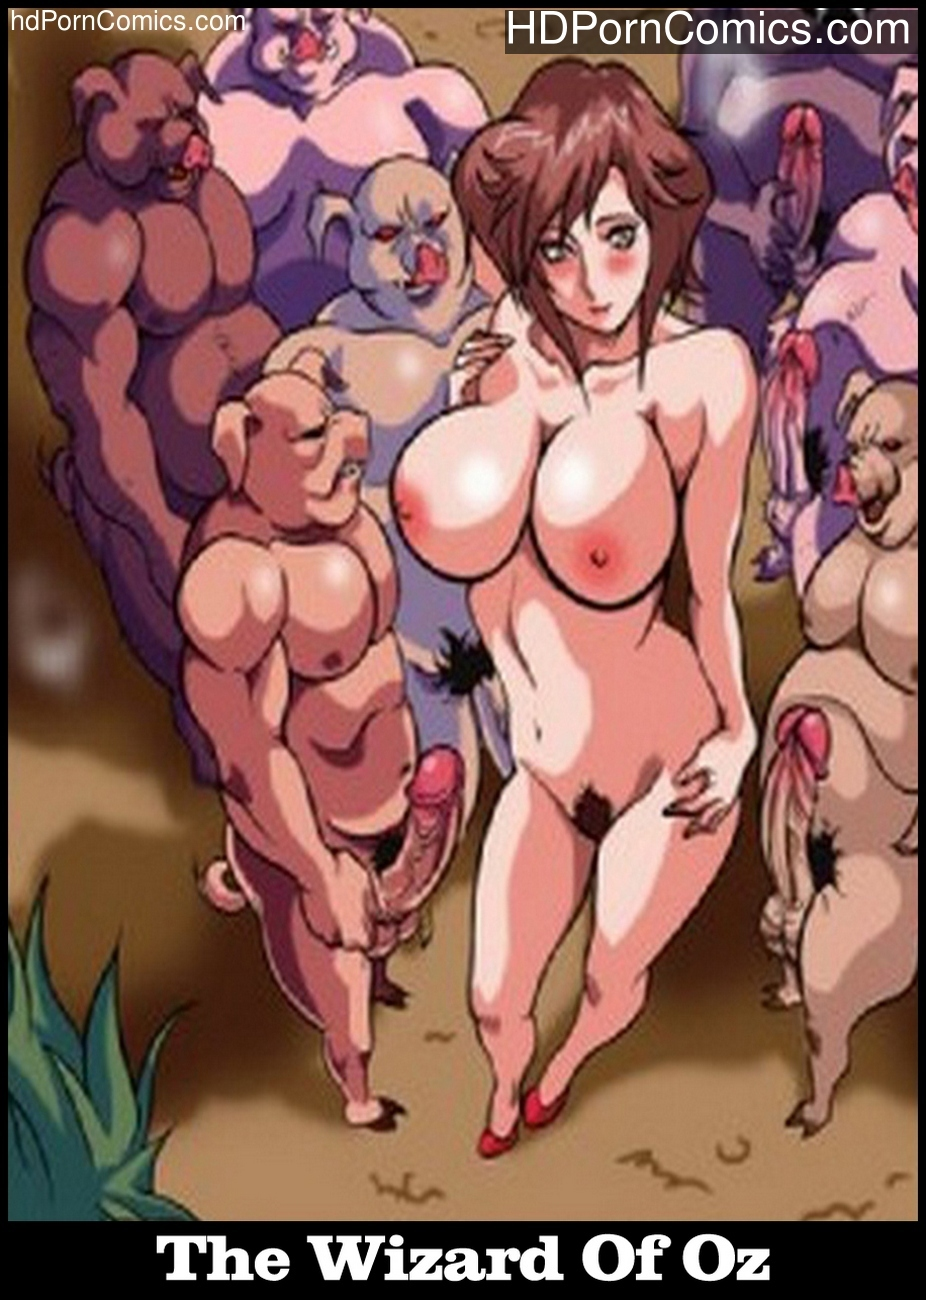 Wizard of oz porn version too